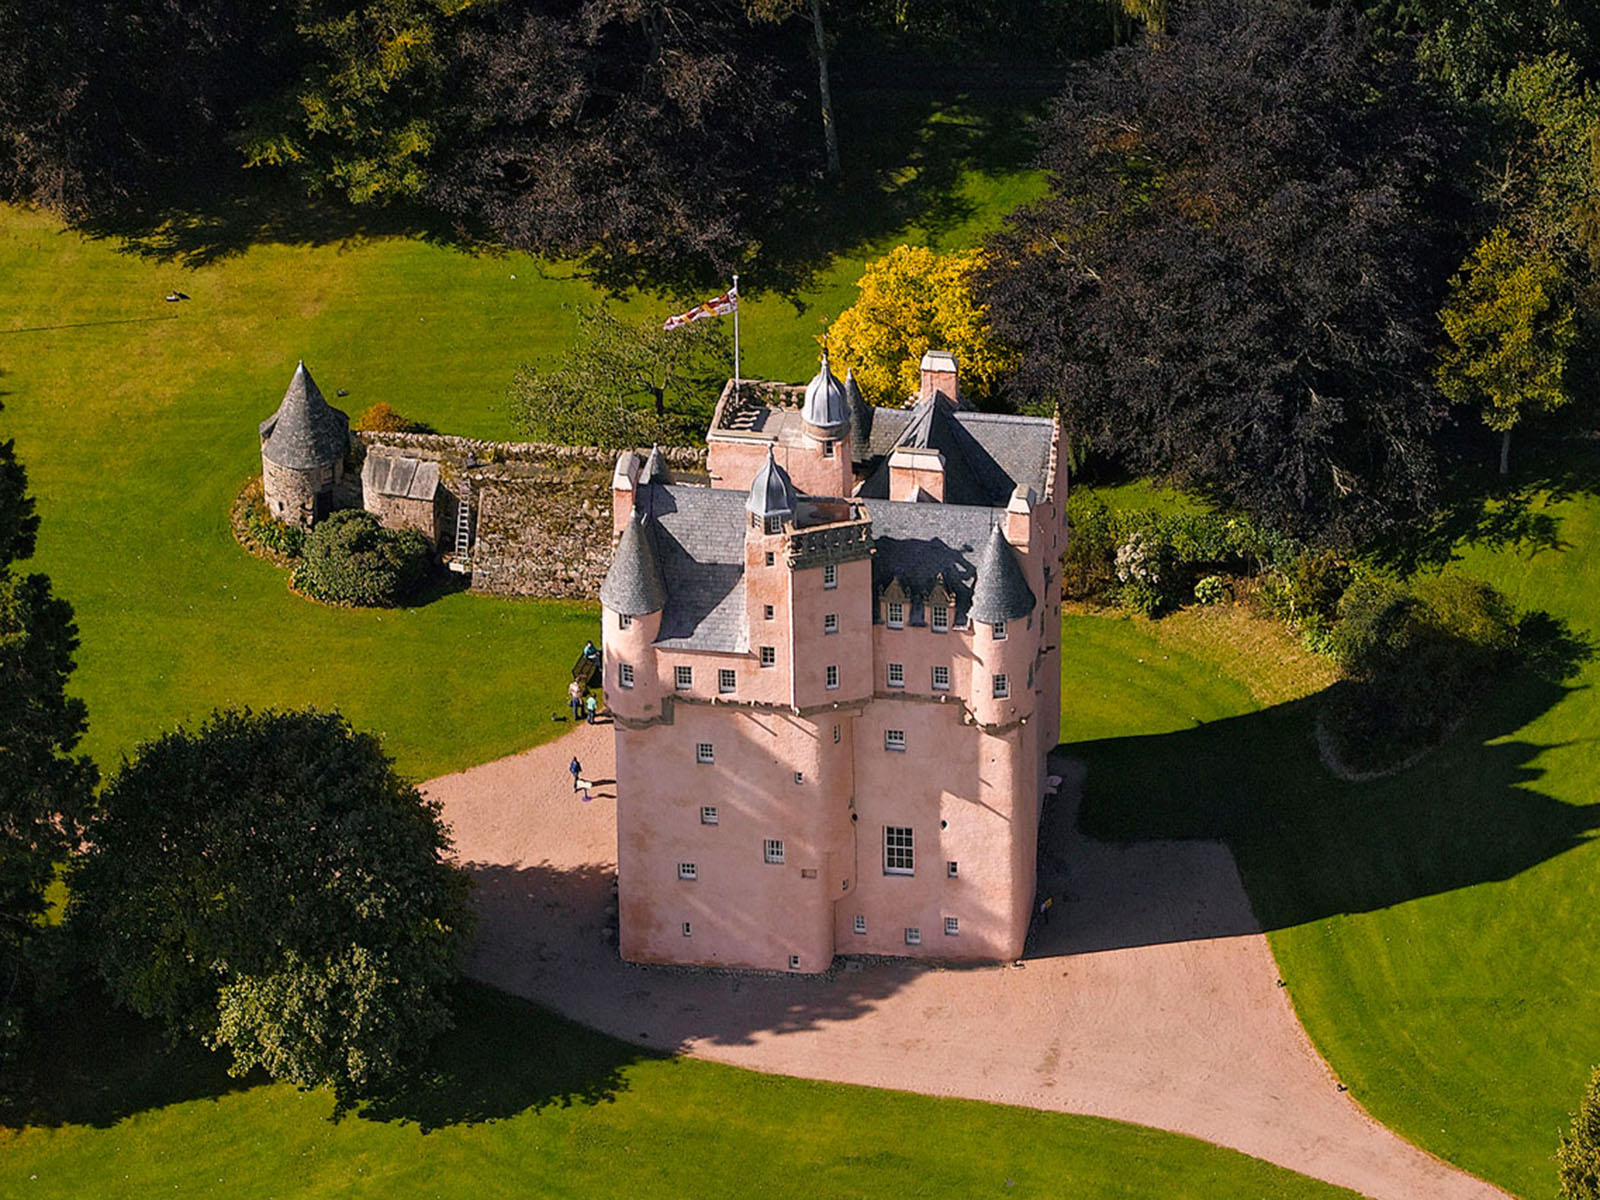 Photographs of the aberdeenshire area